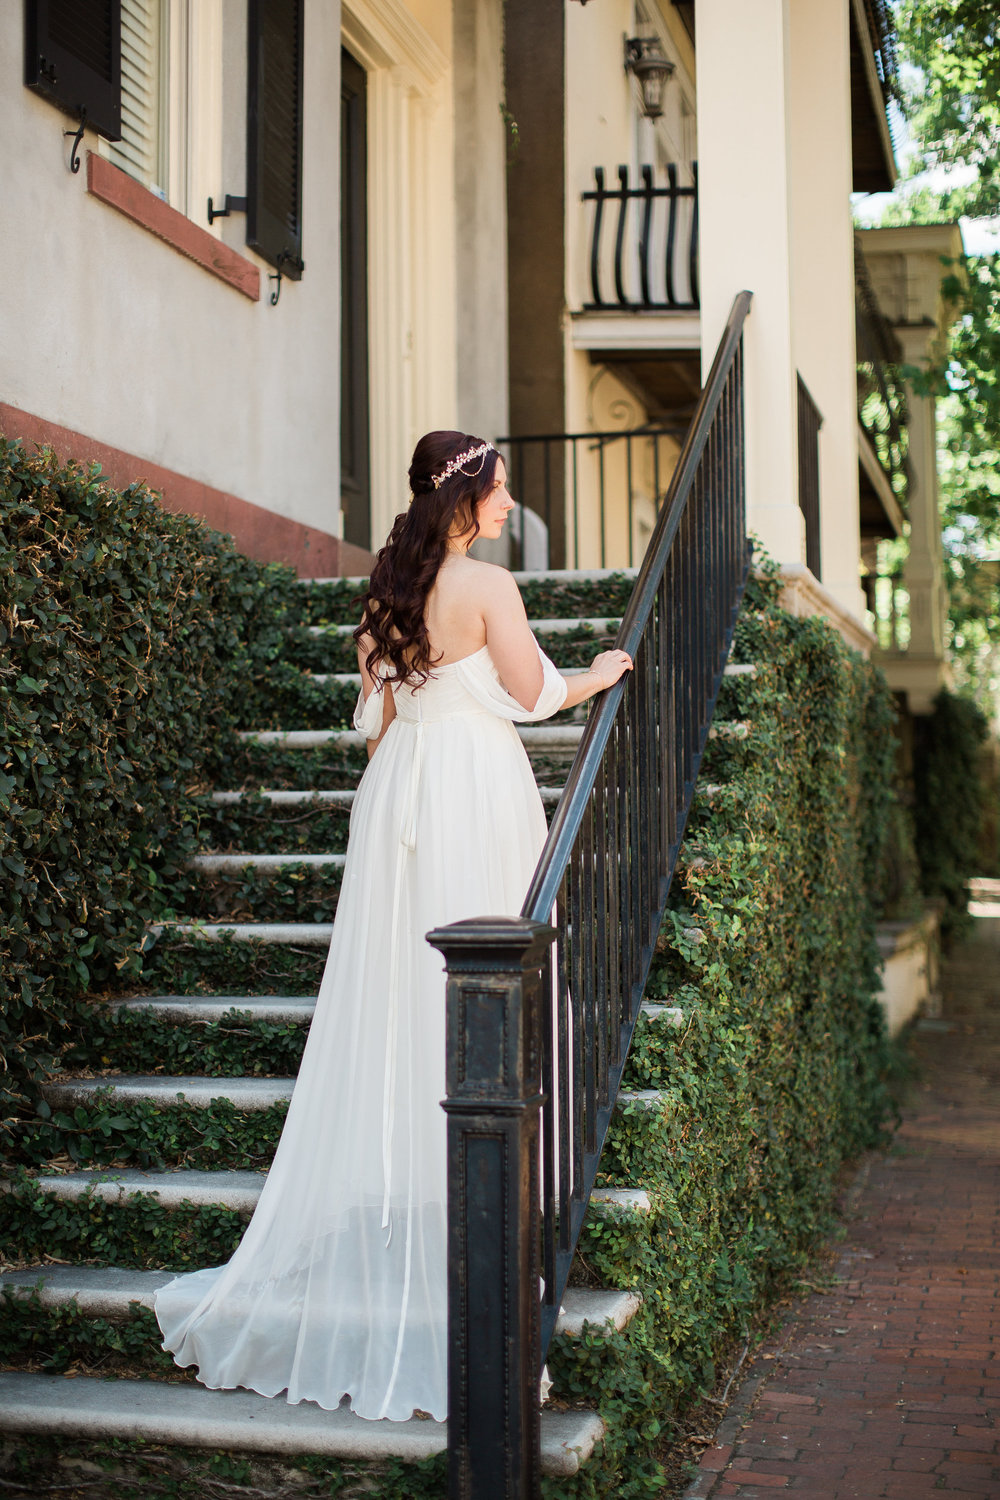 ari-merritt-photography-ivory-and-beau-bridal-boutique-sarah-seven-lafayette-savannah-florist-savannah-floral-designer-10-downing-savannah-wedding-southern-wedding-savannah-bridal-boutique-savannah-wedding-dresses-savannah-wedding-planner-3.jpg